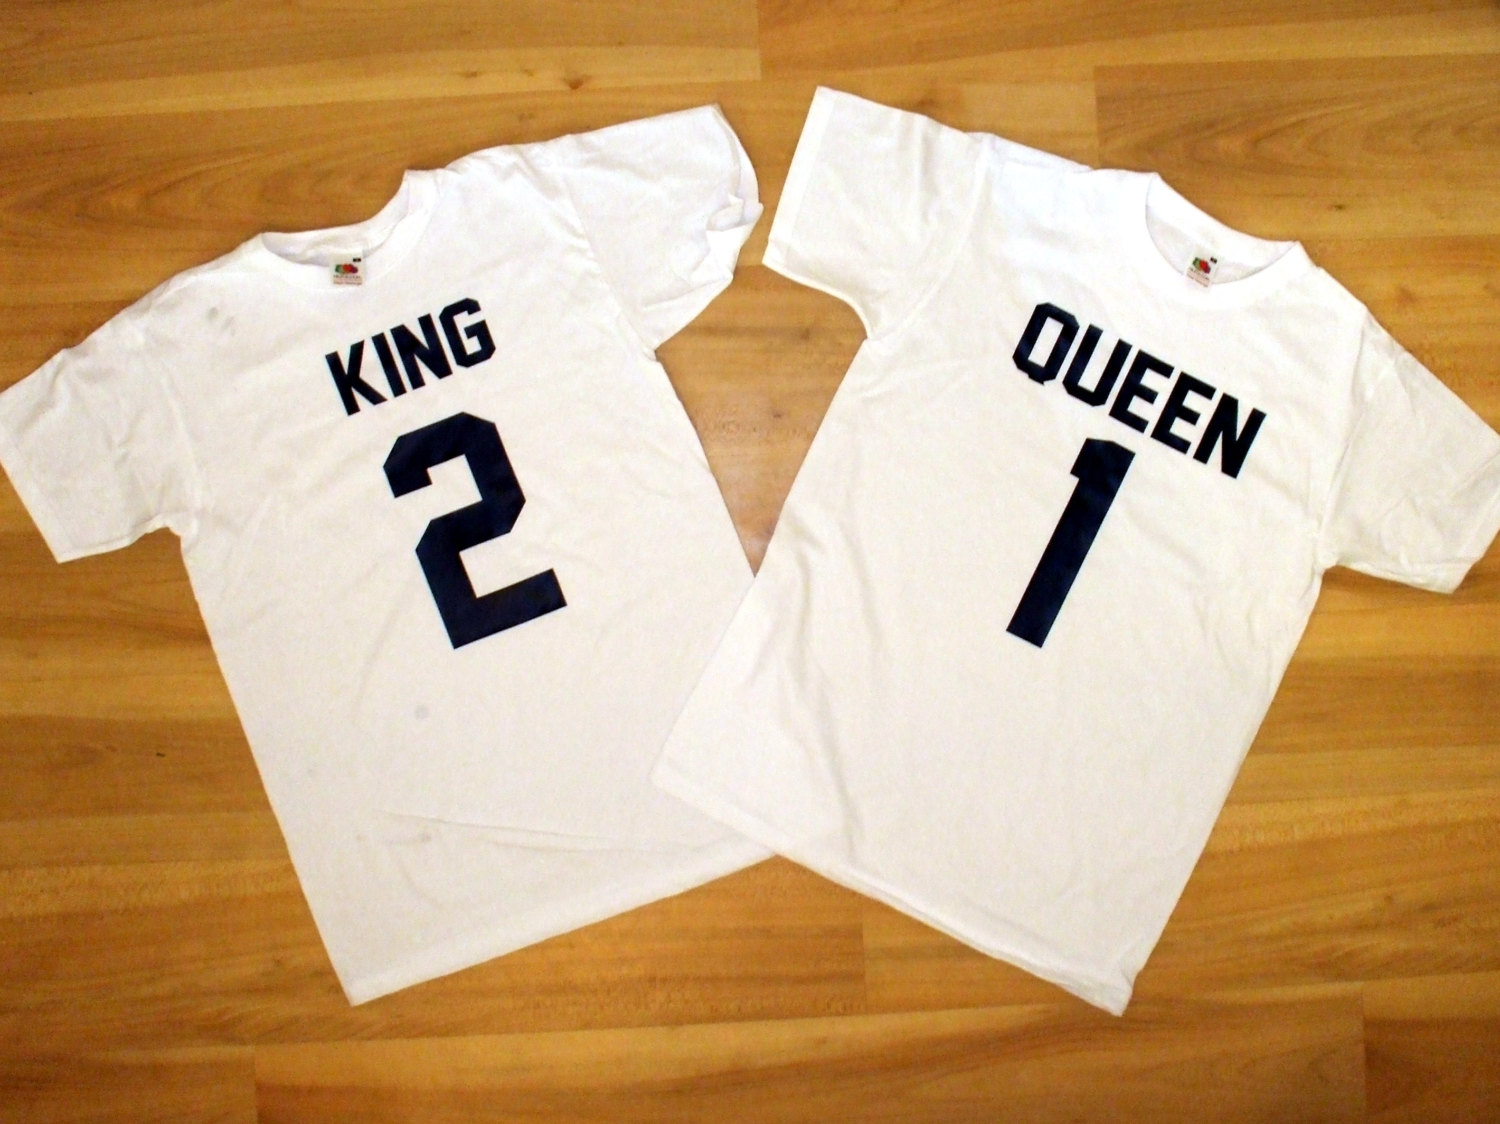 Amazoncom king queen prince shirts